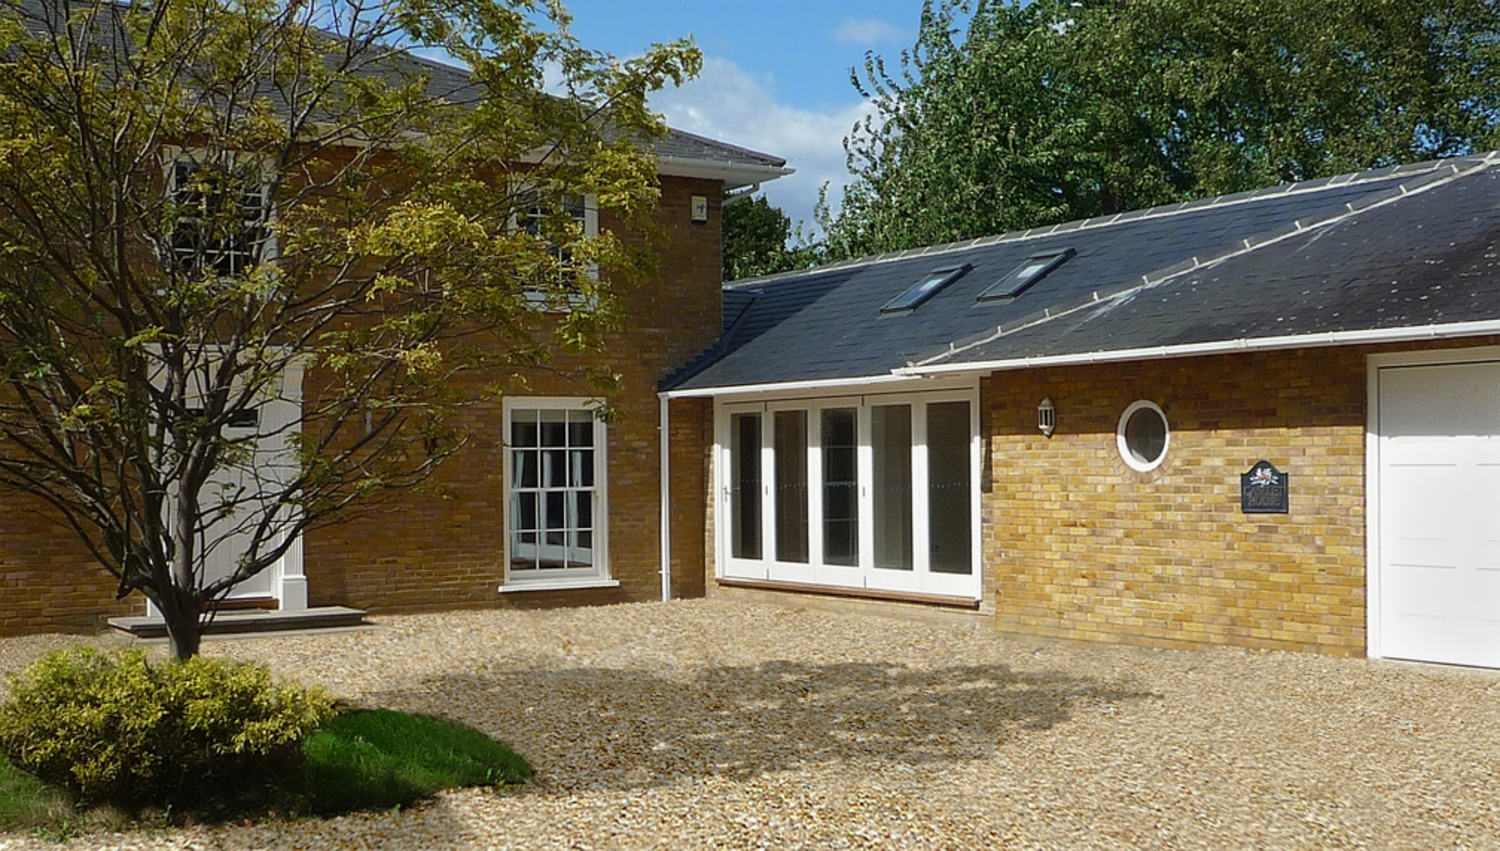 Driveway view of a house extension by Harvey Norman Architects Cambridge